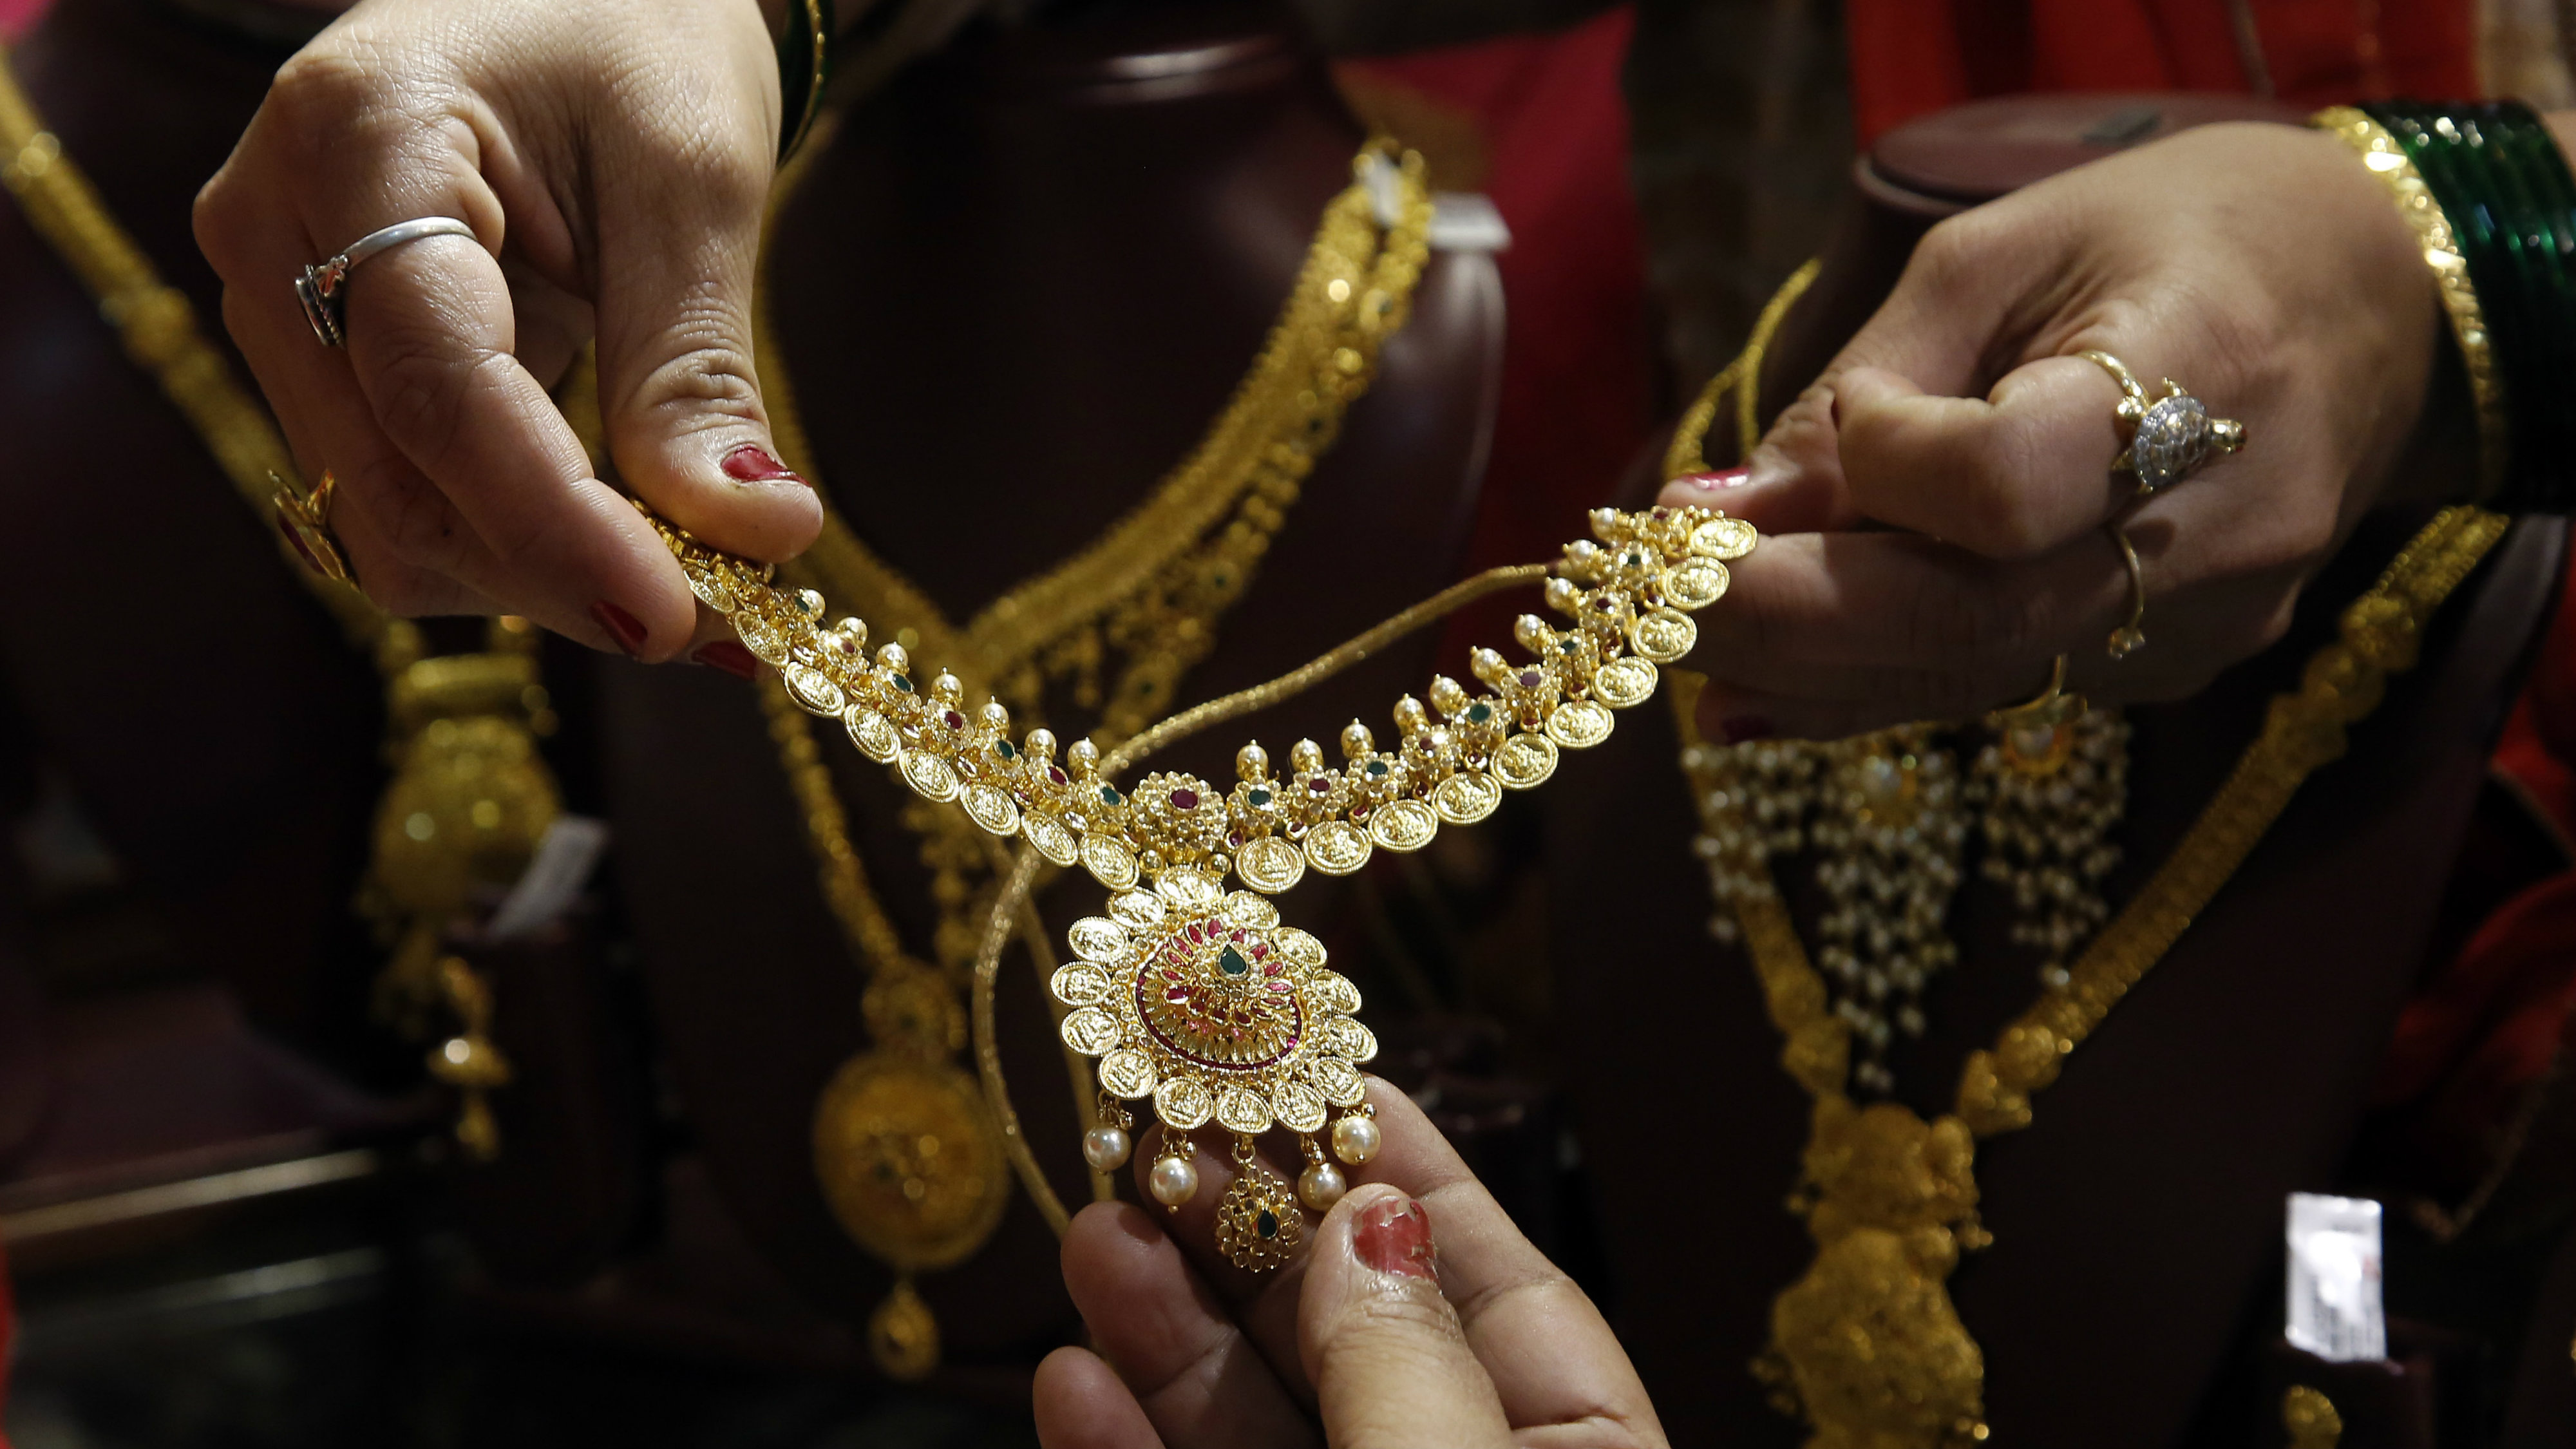 Indians look at a gold jewelry item as they shop on the occasion of 'Akshay Tritiya' in Mumbai, India, Monday, May 9, 2016. Monday marks the Hindu festival Akshay Tritiya, which is considered auspicious for buying gold among other things.